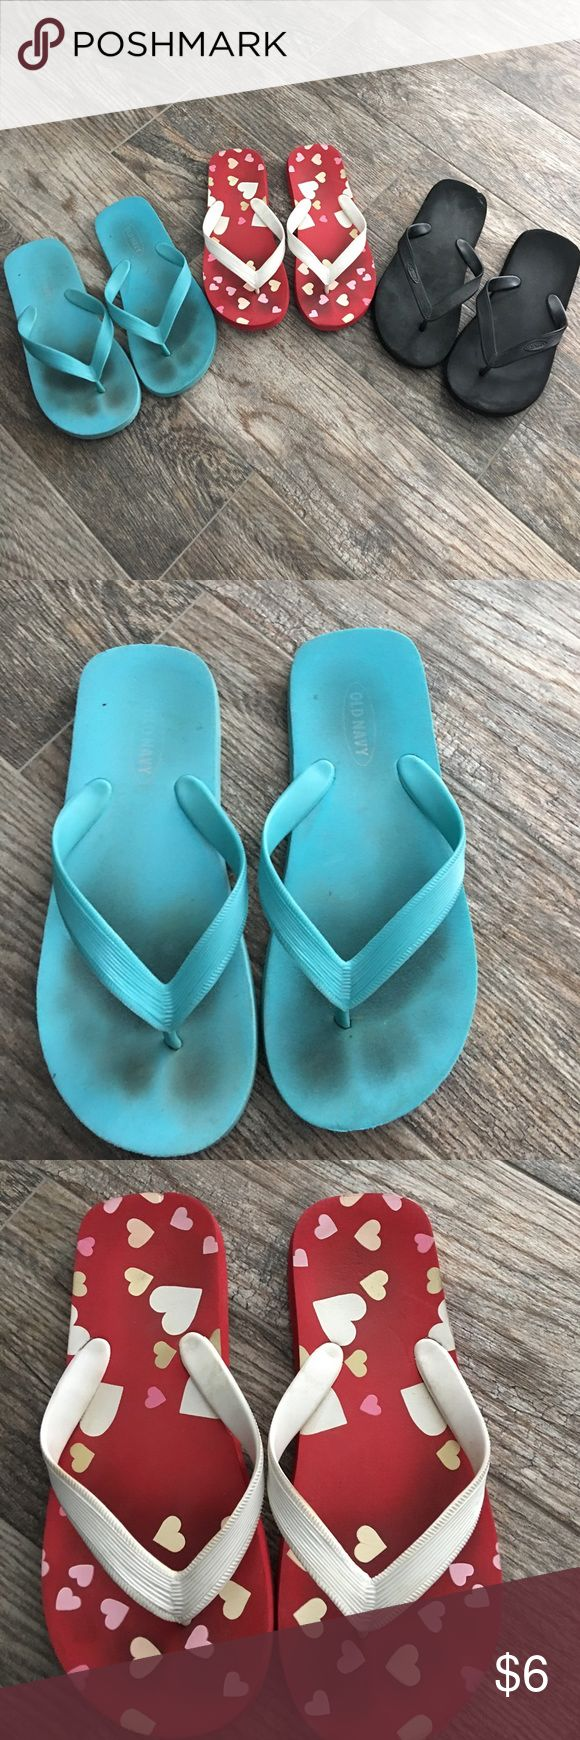 Old navy flip flops ⭐️final price⭐️3 pairs old navy flip flops. Black, blue and red with hearts. All gently used clean smokefree home Old Navy Shoes Sandals